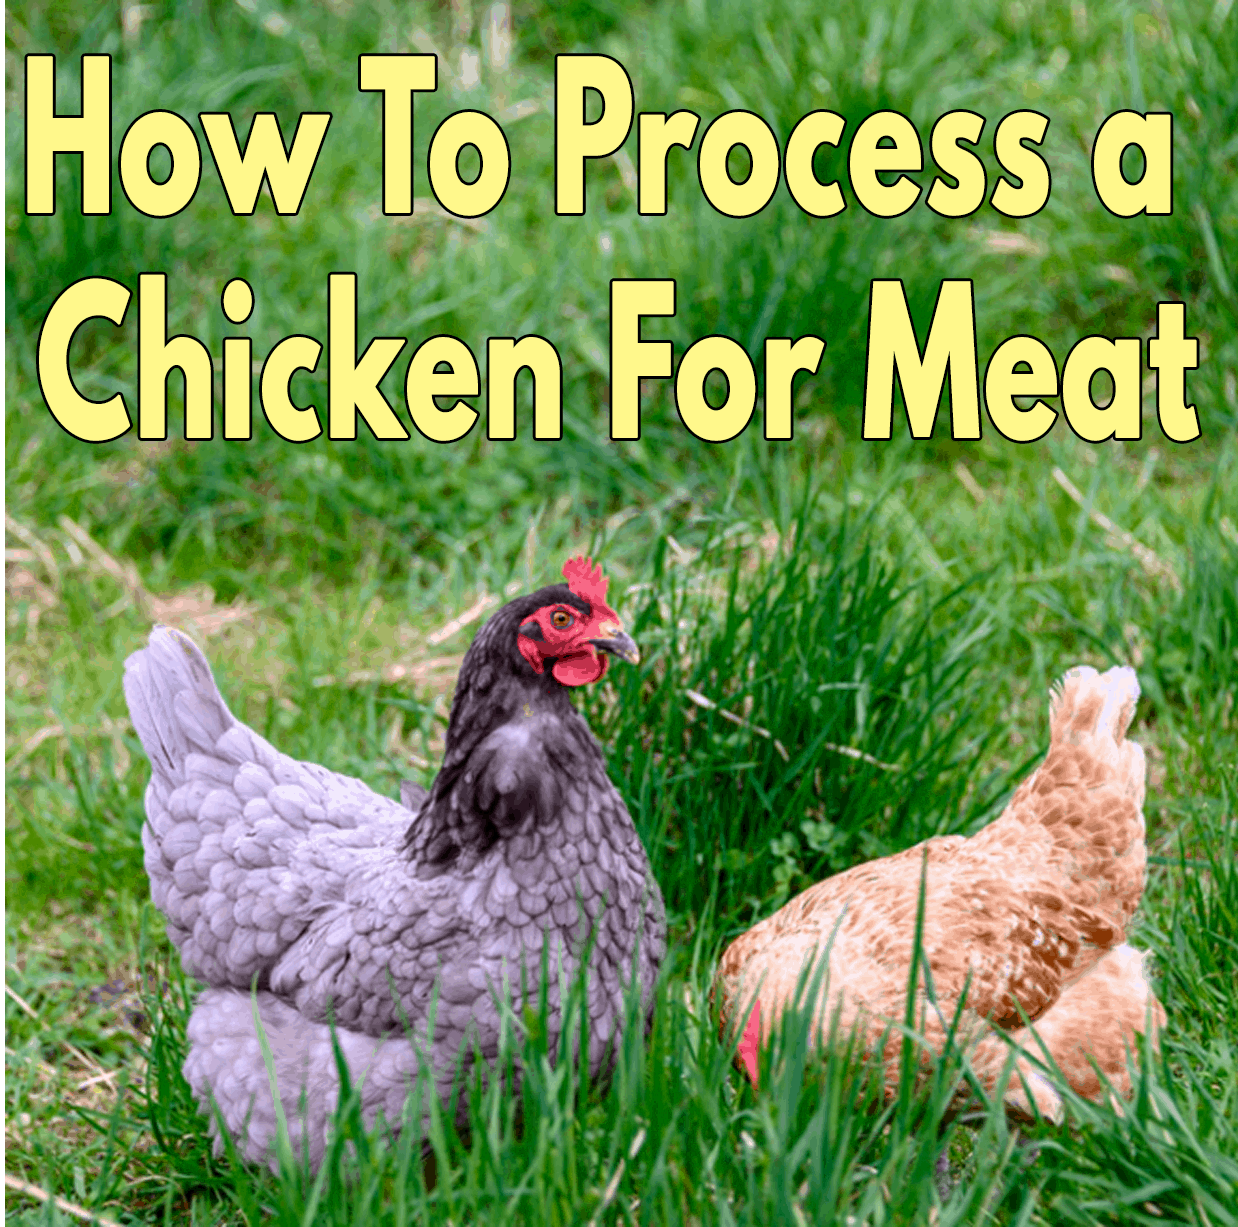 How To Process a Chicken For Meat